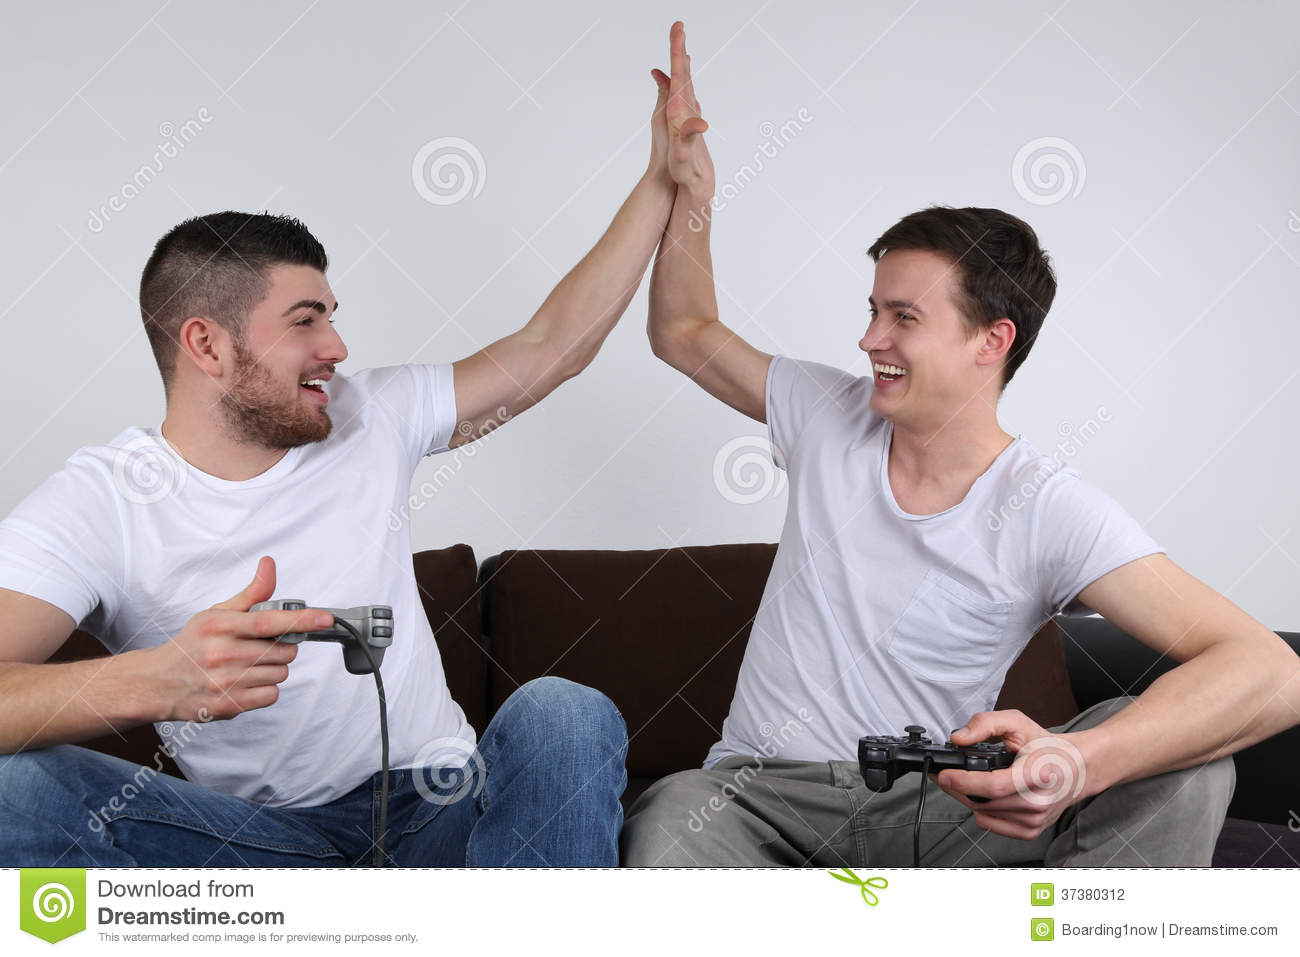 two people games